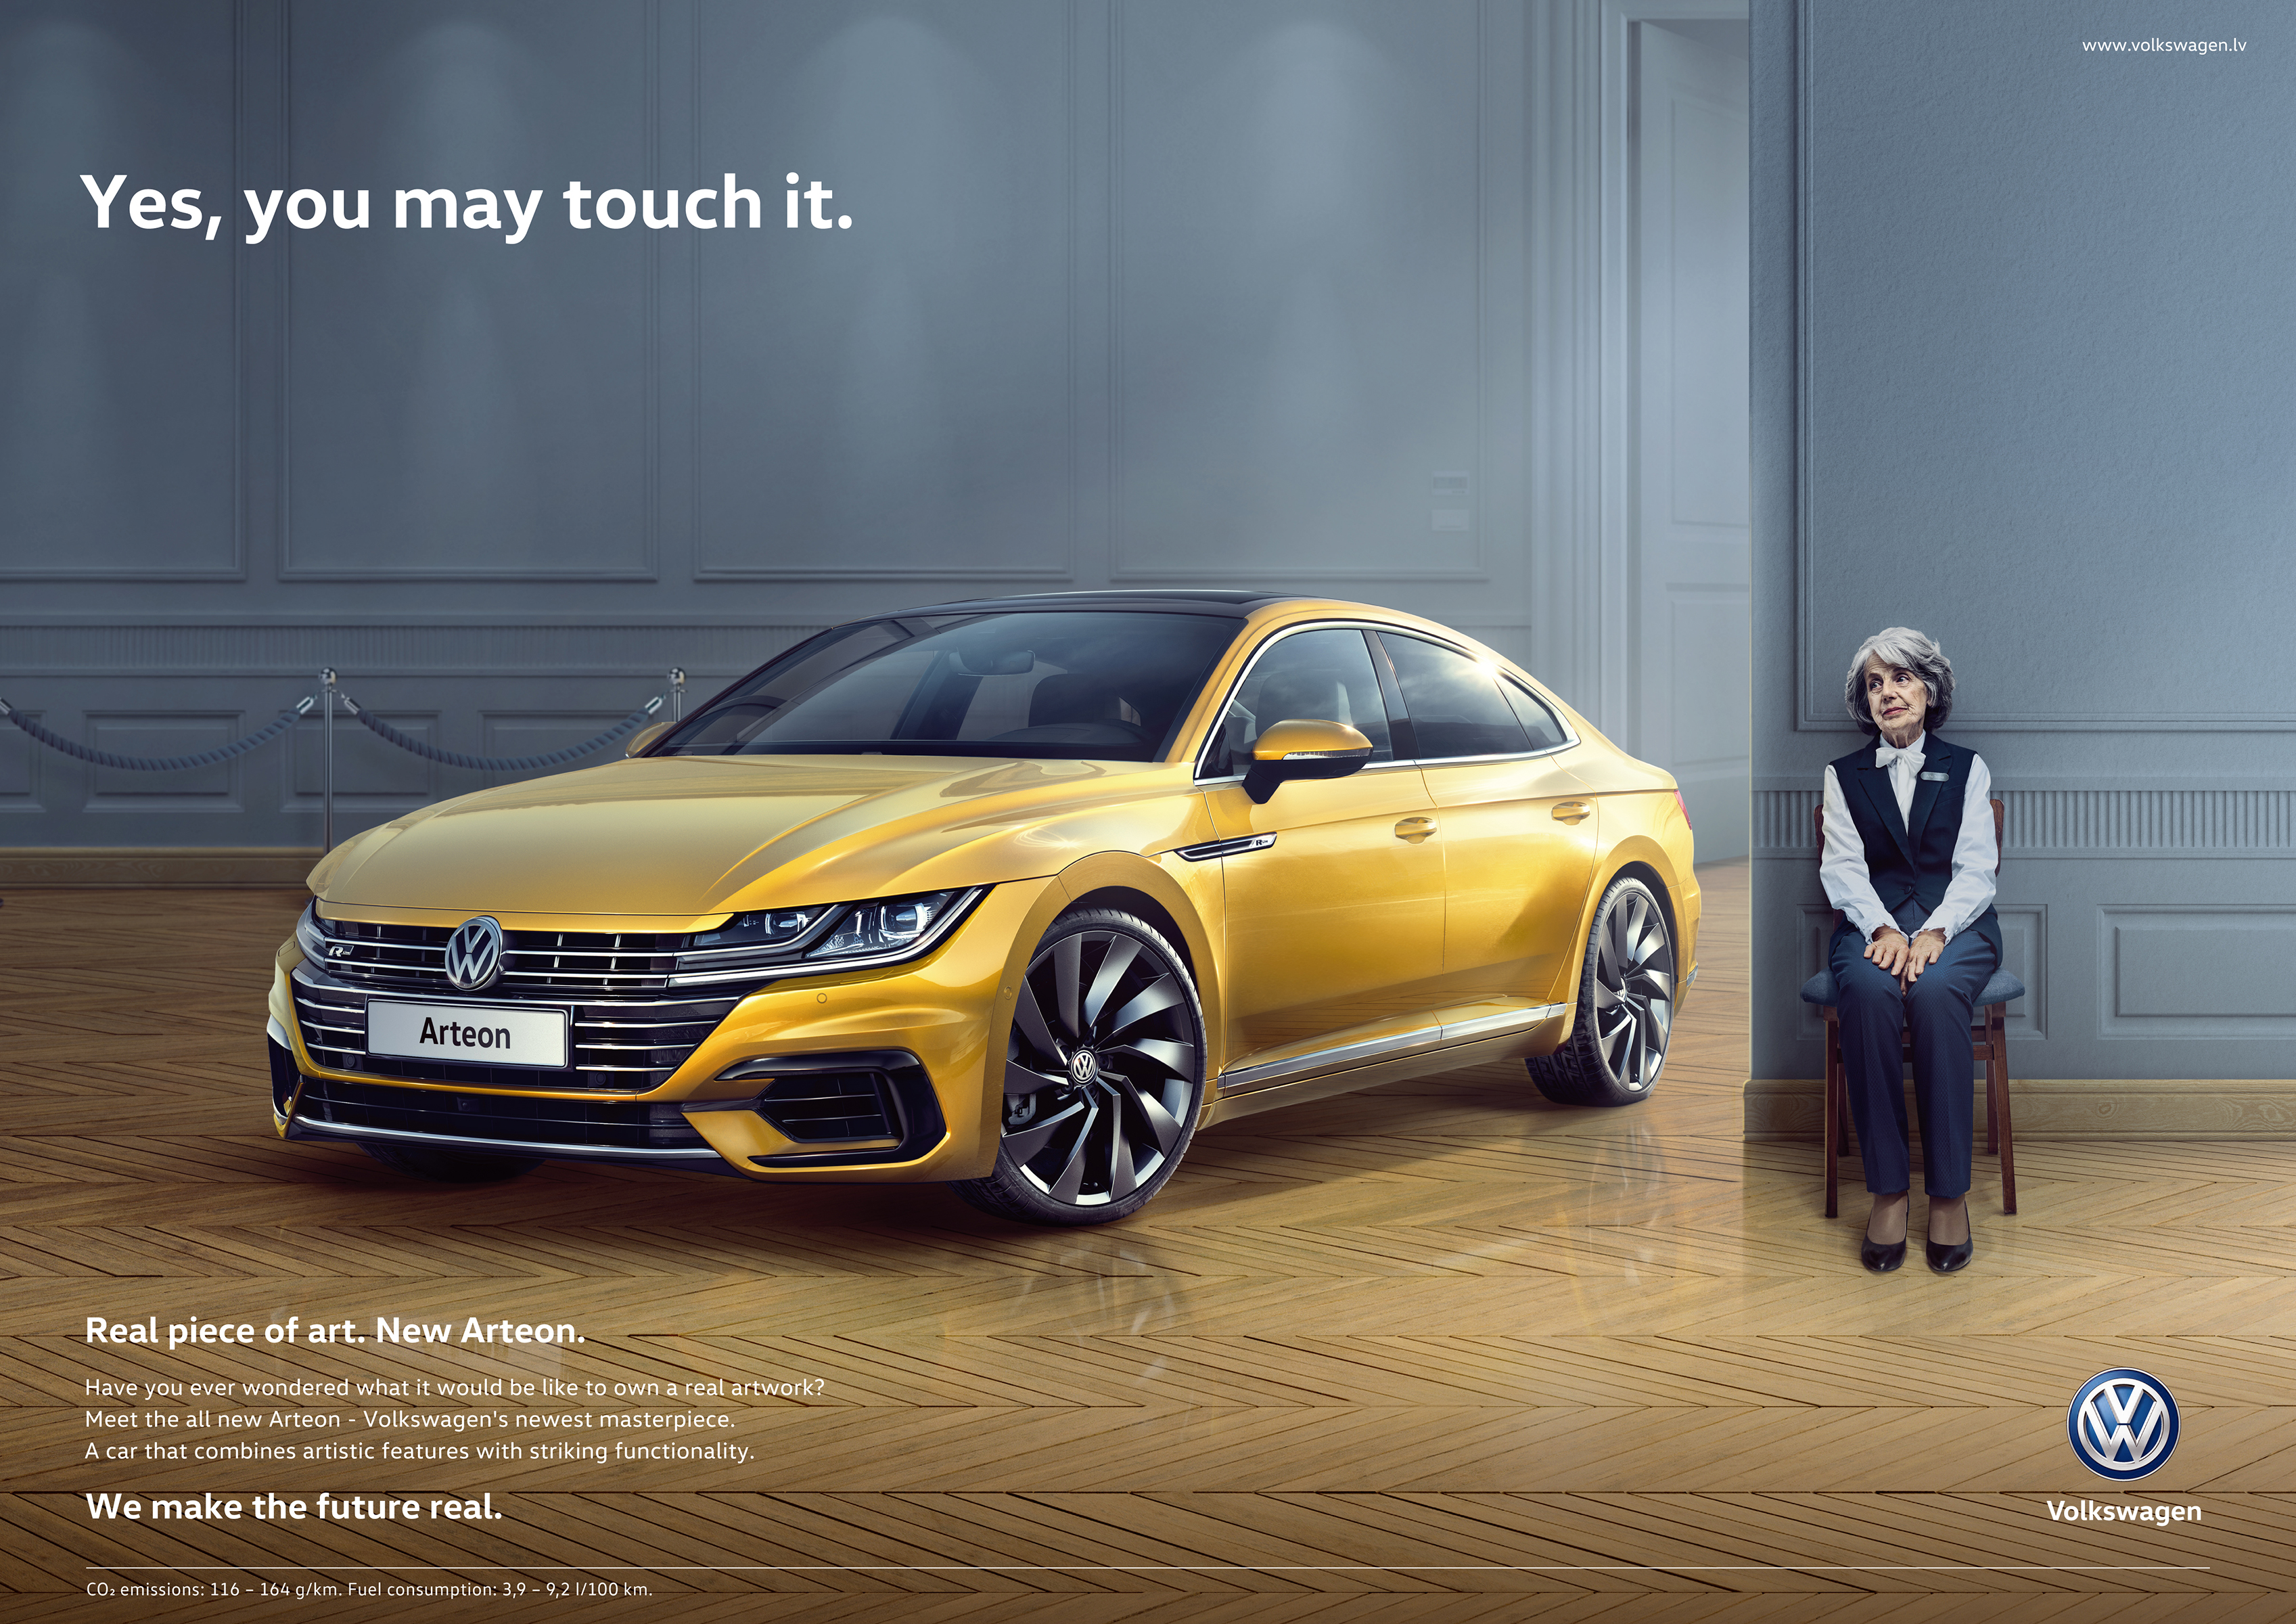 Volkswagen Print Advert By Not Perfect Real Piece Of Art